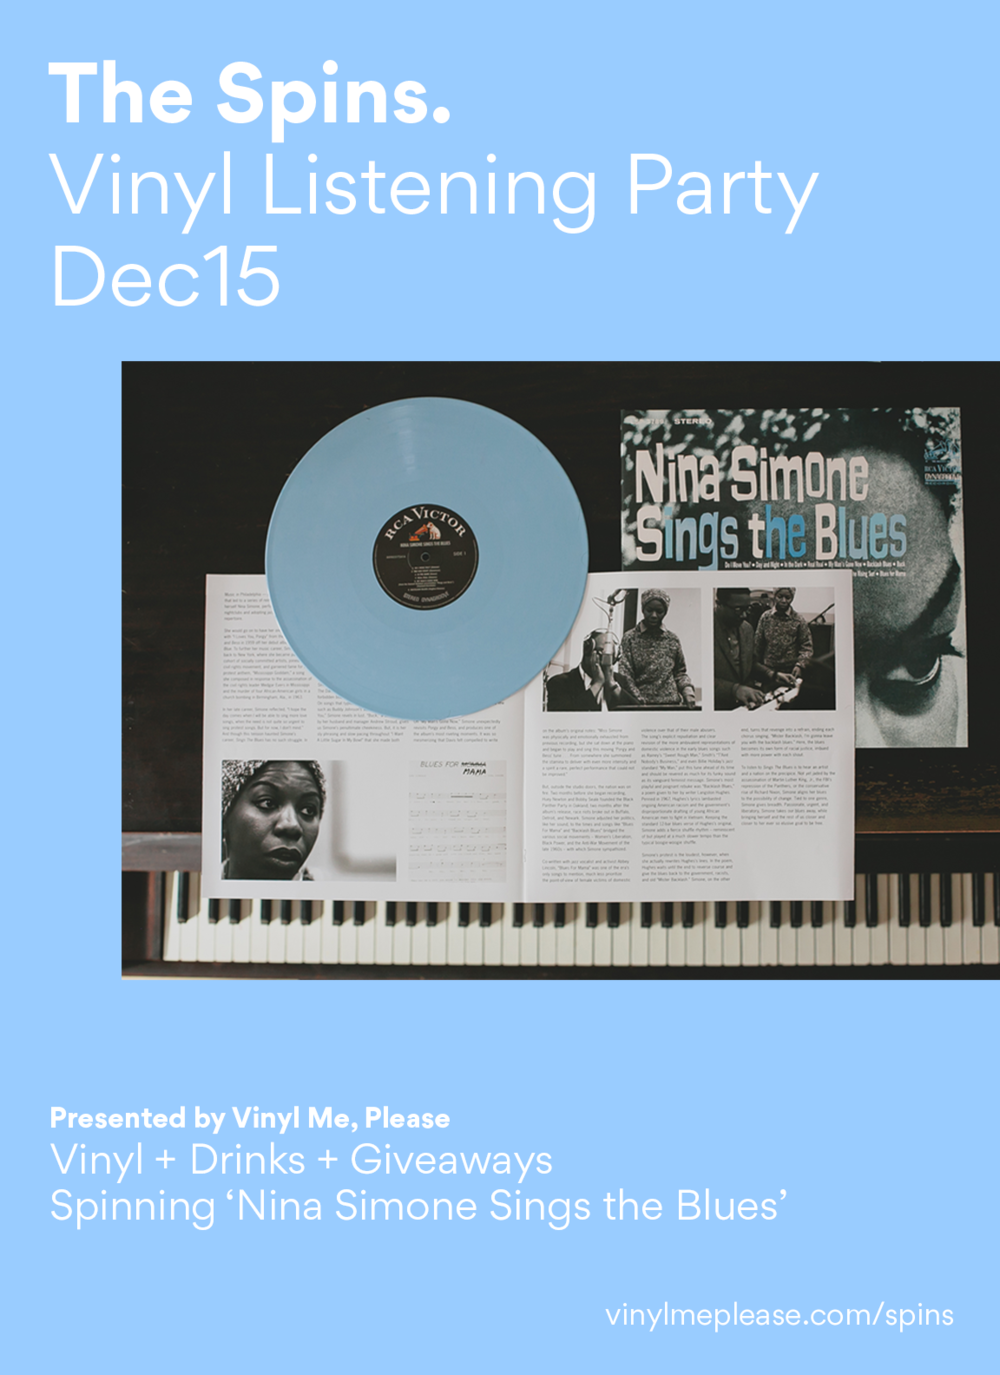 Enjoy a night listening to soul, jazz, and the blues, meeting the local vinyl-loving community, and drink specials, & get the chance to walk away with a free copy of the exclusive Nina Simone record.   Event will run from 6 - 9 PM on Thursday, December 15 at Vinyl Tap at 2038 Greenwood Ave., Nashville, TN 37206.   In the spirit of the holiday season, give the gift that keeps on giving, and you'll be loved forever... http://www.vinylmeplease.com/gift/